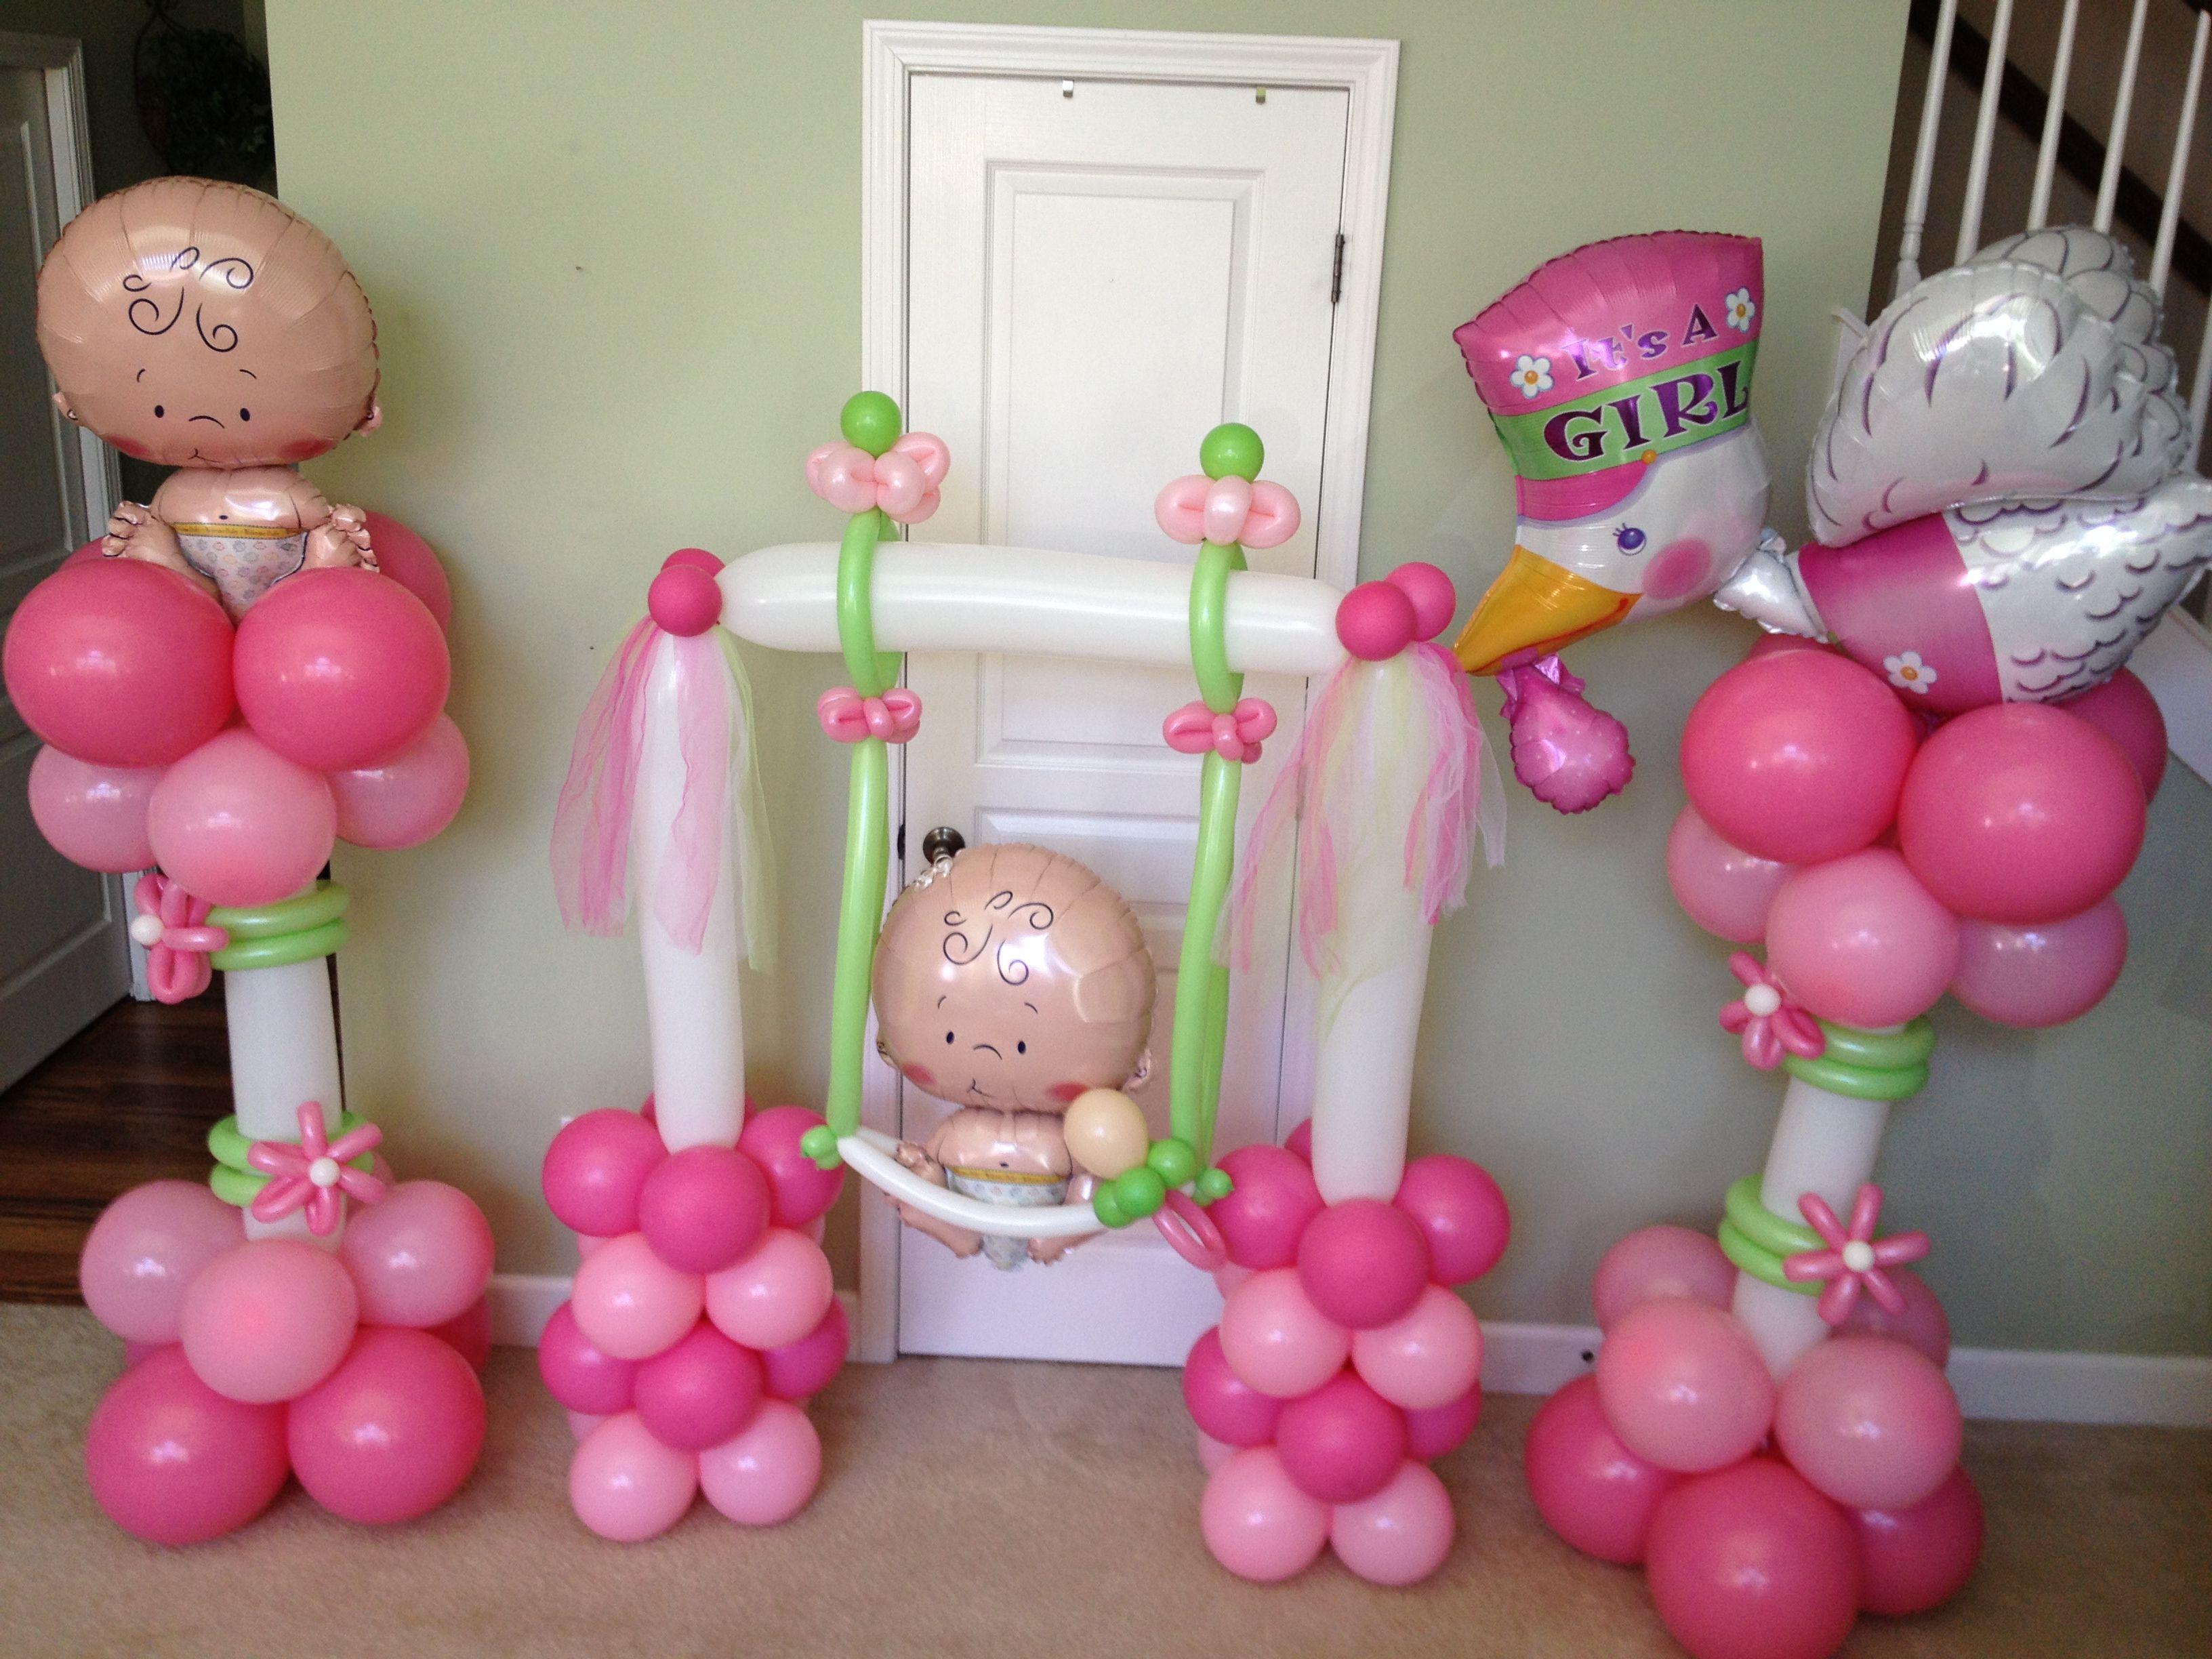 Baby girl balloon decorations baby shower balloons for Baby shower decoration ideas for twin girls